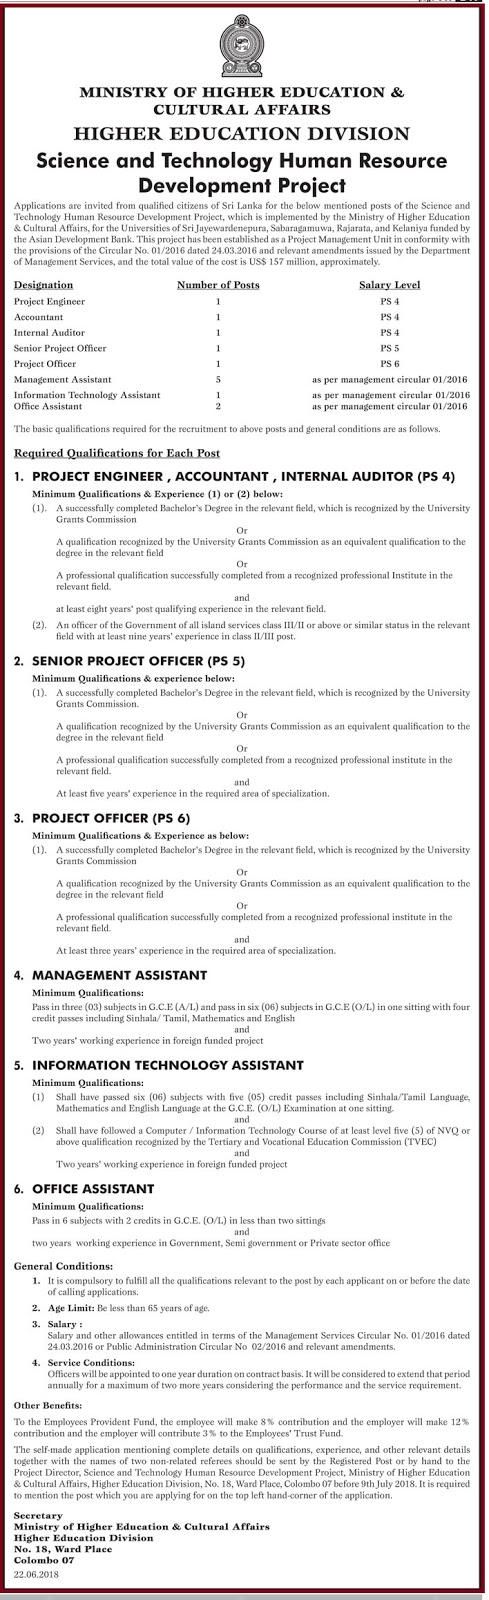 Ministry of Higher Education & Cultural Affairs Vacancies